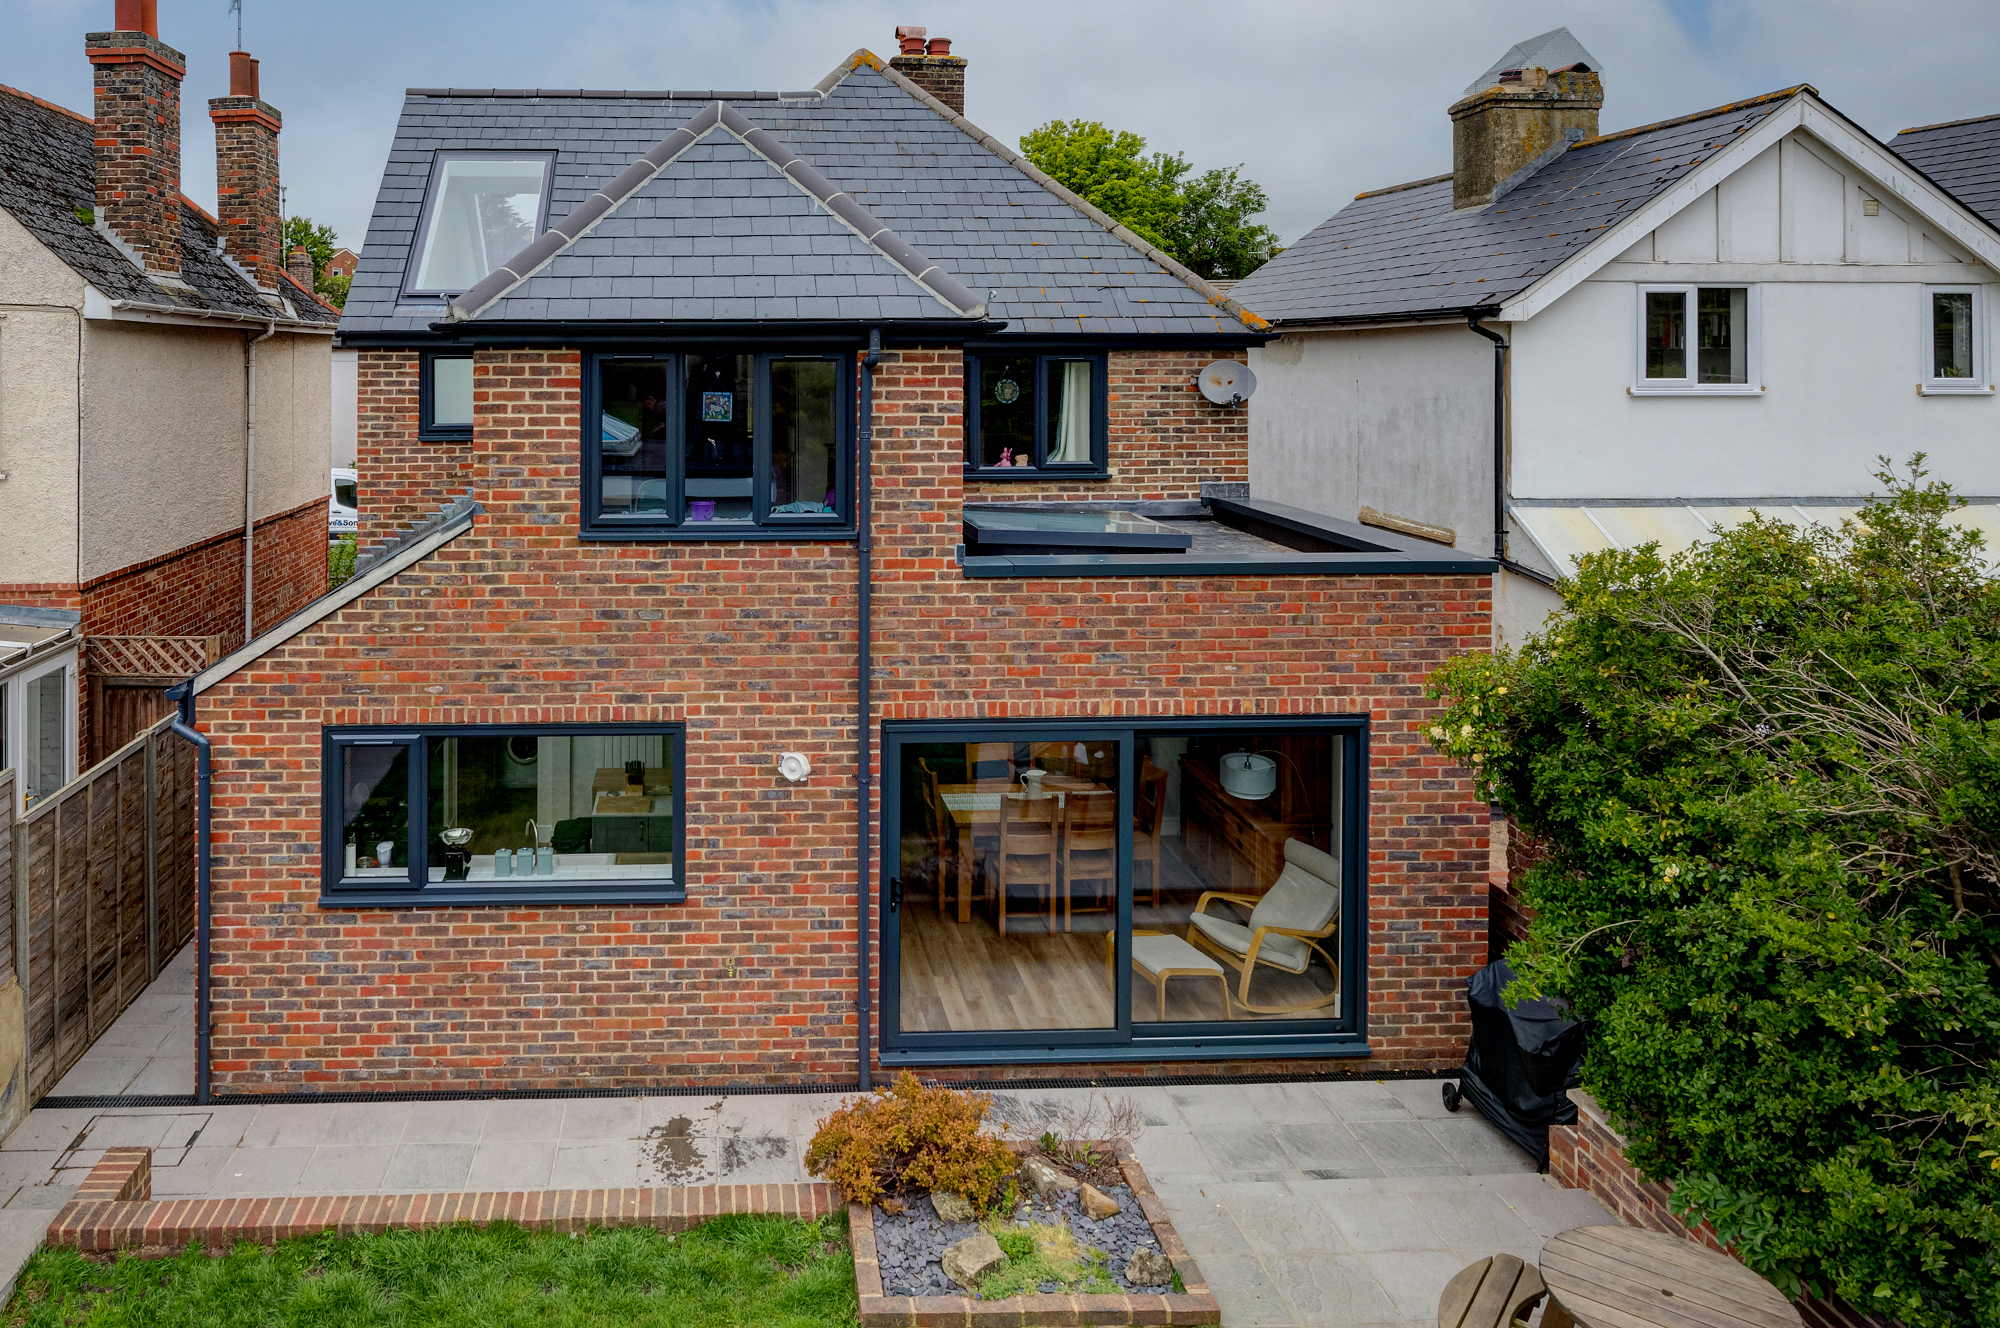 G3 Architecture Seaford Extension 1 2000_0004_G3 Architecture Seaford Extension 2.jpg